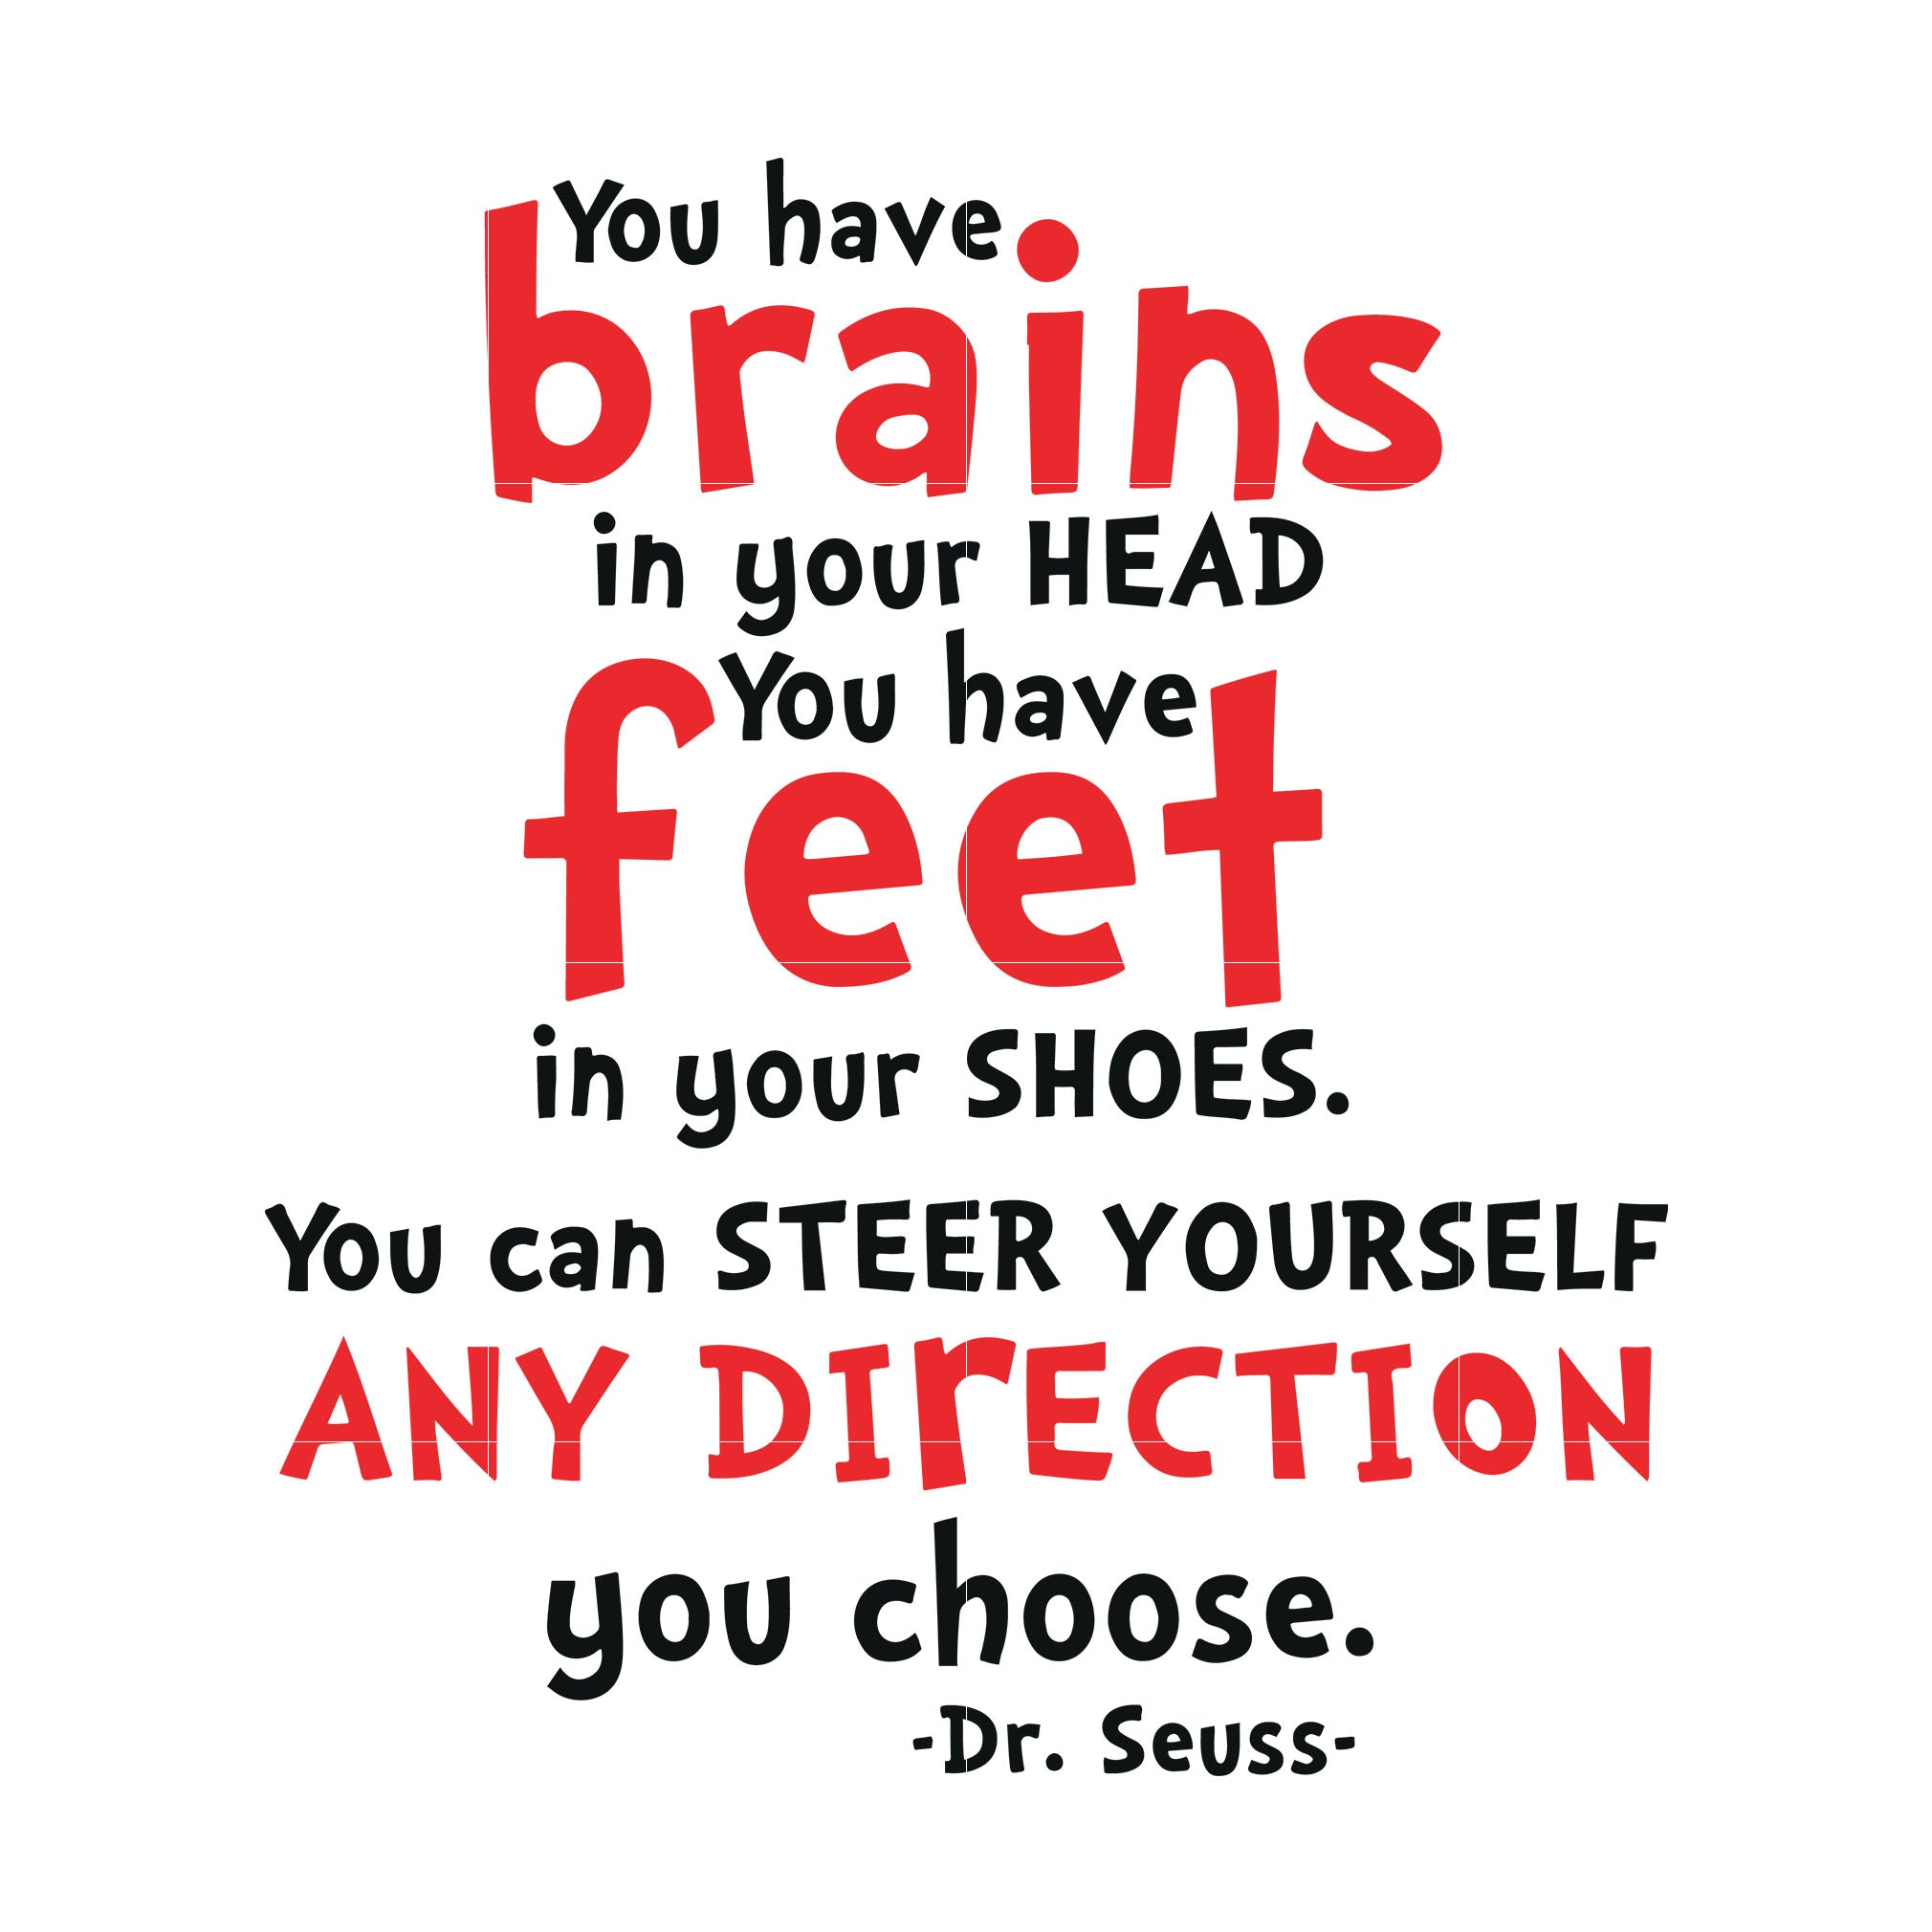 You have brains in your head you have feet in your shoes you can steers yourself any direction you choose, dr seuss svg, dr seuss quotes, digital file